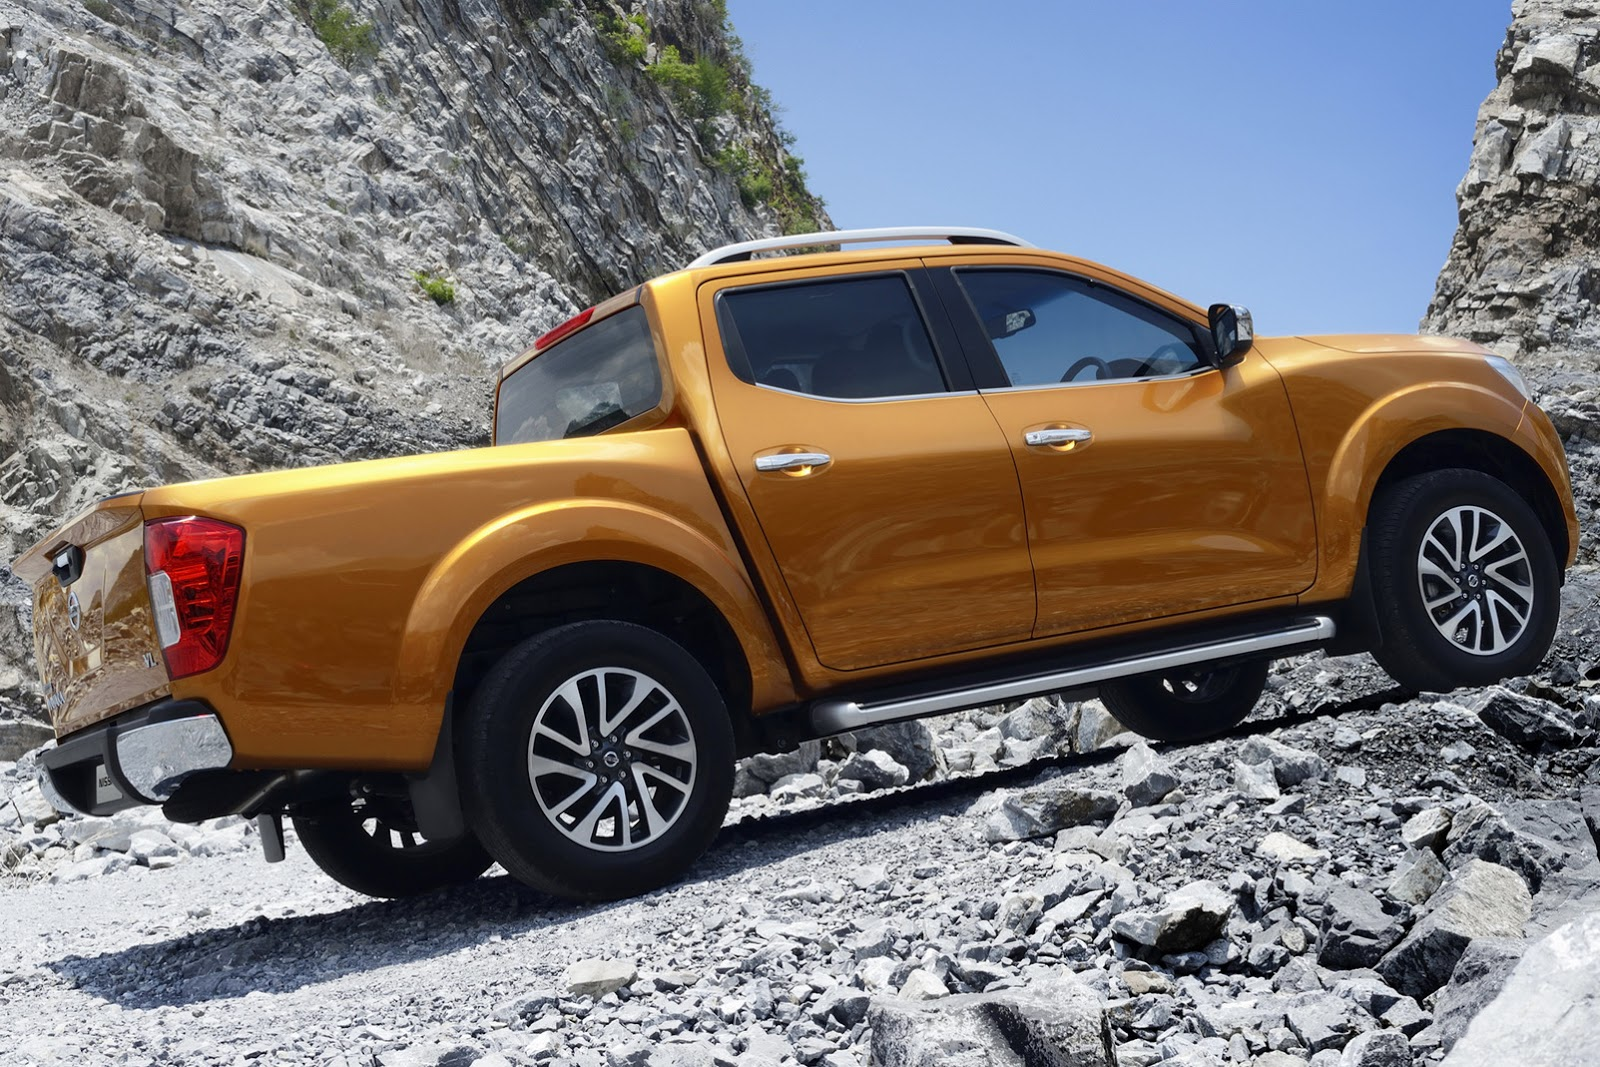 Renault Pickup Truck Confirmed For 2016 Will Be Based On Nissan 1988 D21 Vacuum Diagram 2015 Navara